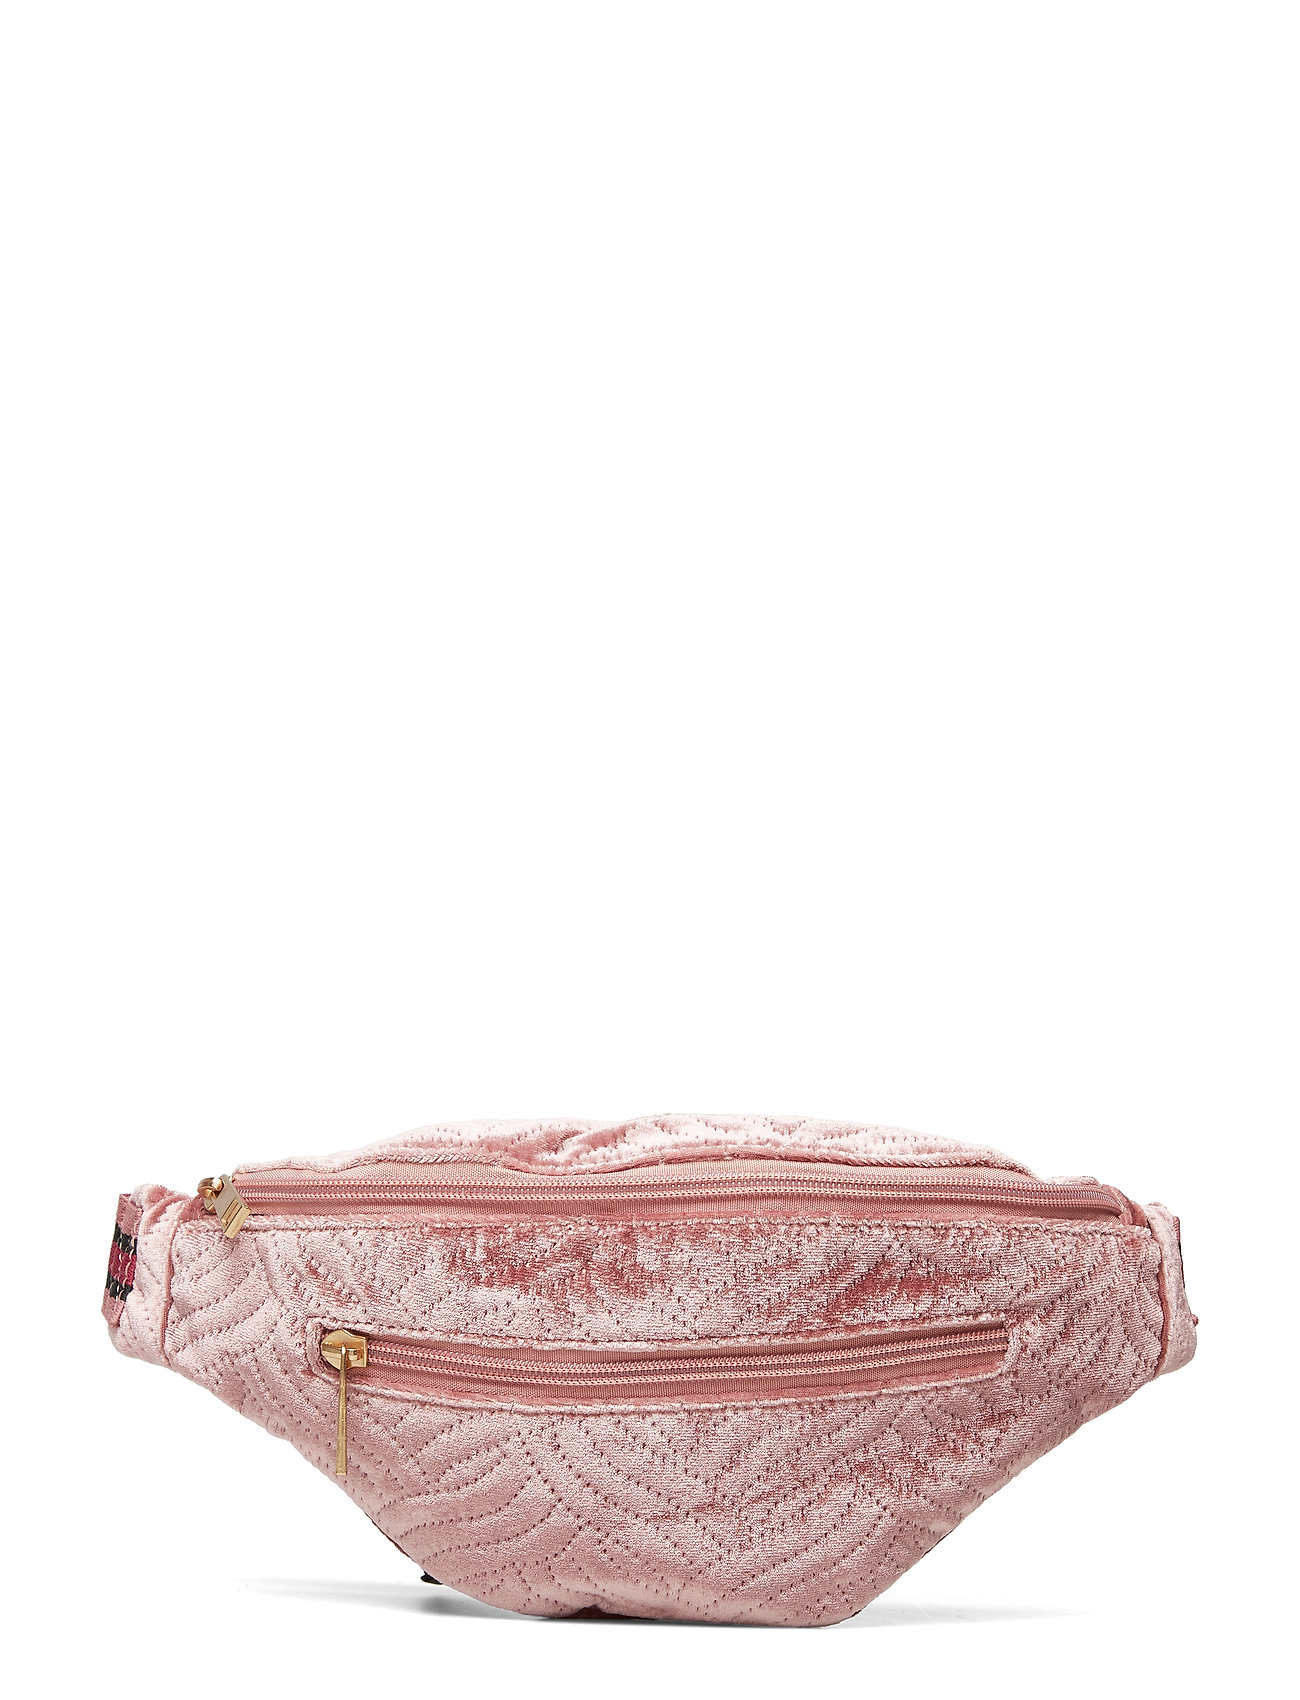 Petit by Sofie Schnoor Bumbag - DUSTY ROSE